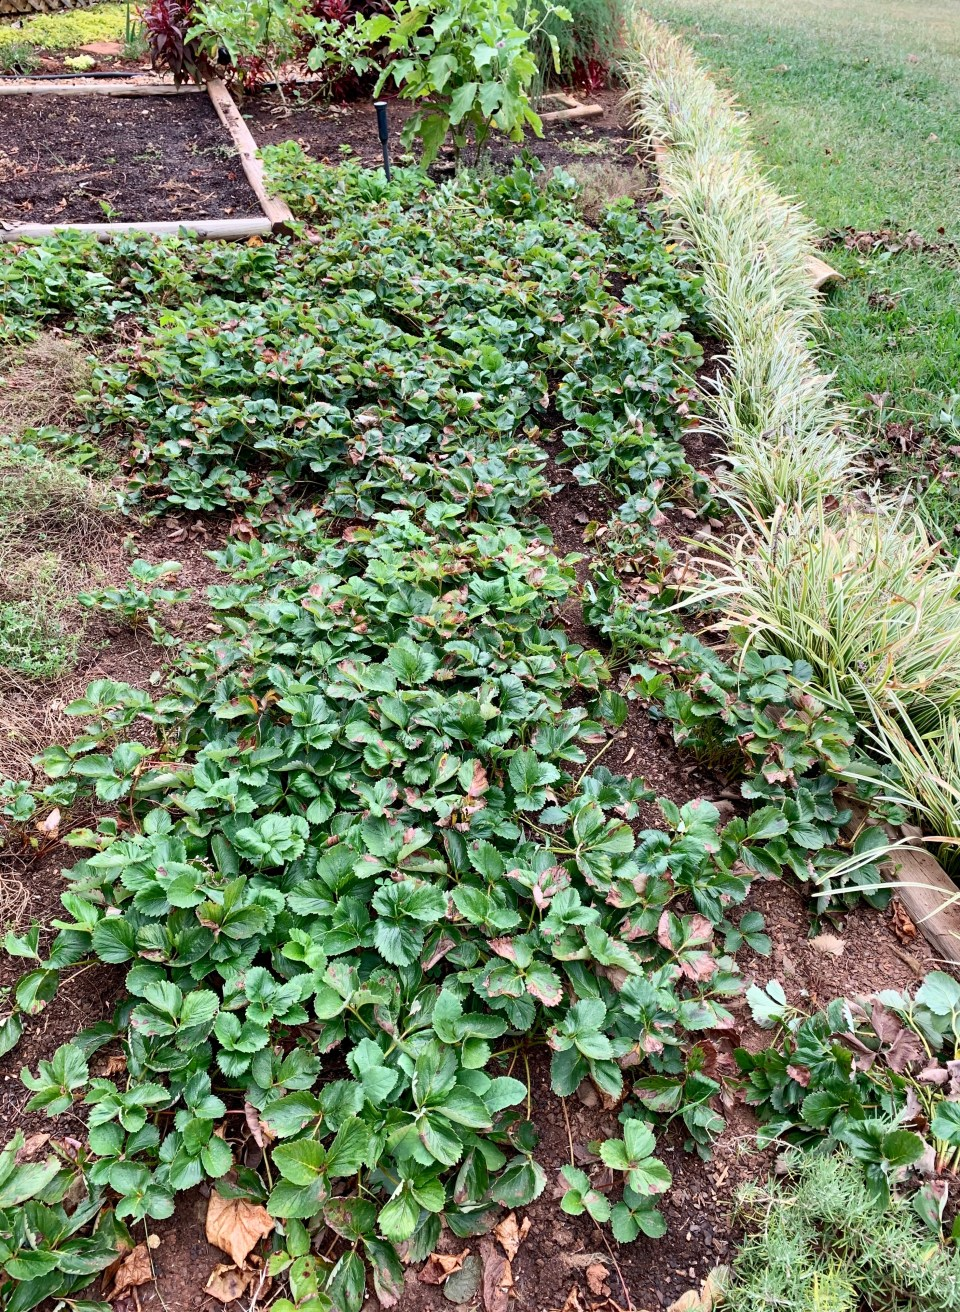 A strawberry patch in a garden.